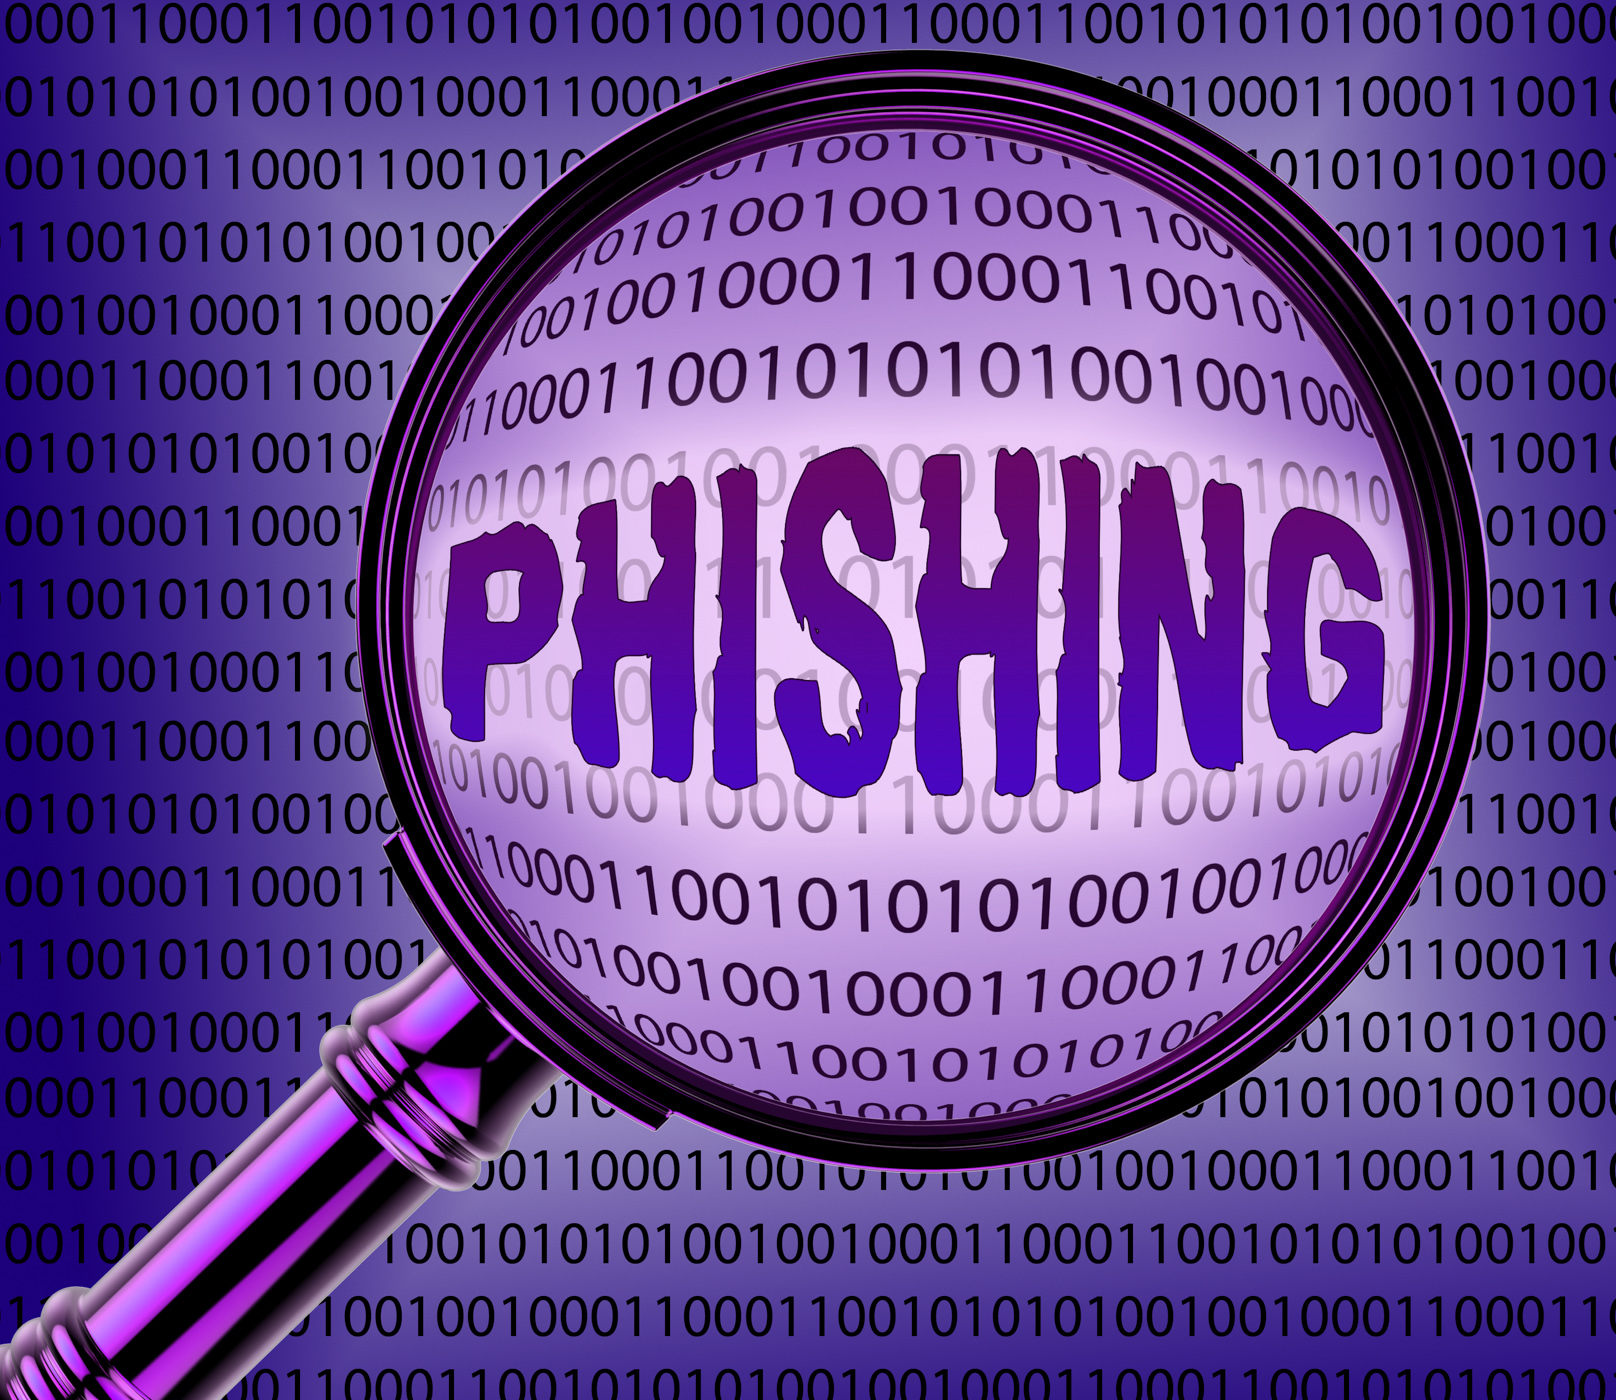 Computer phishing means magnifier magnifying and internet photo